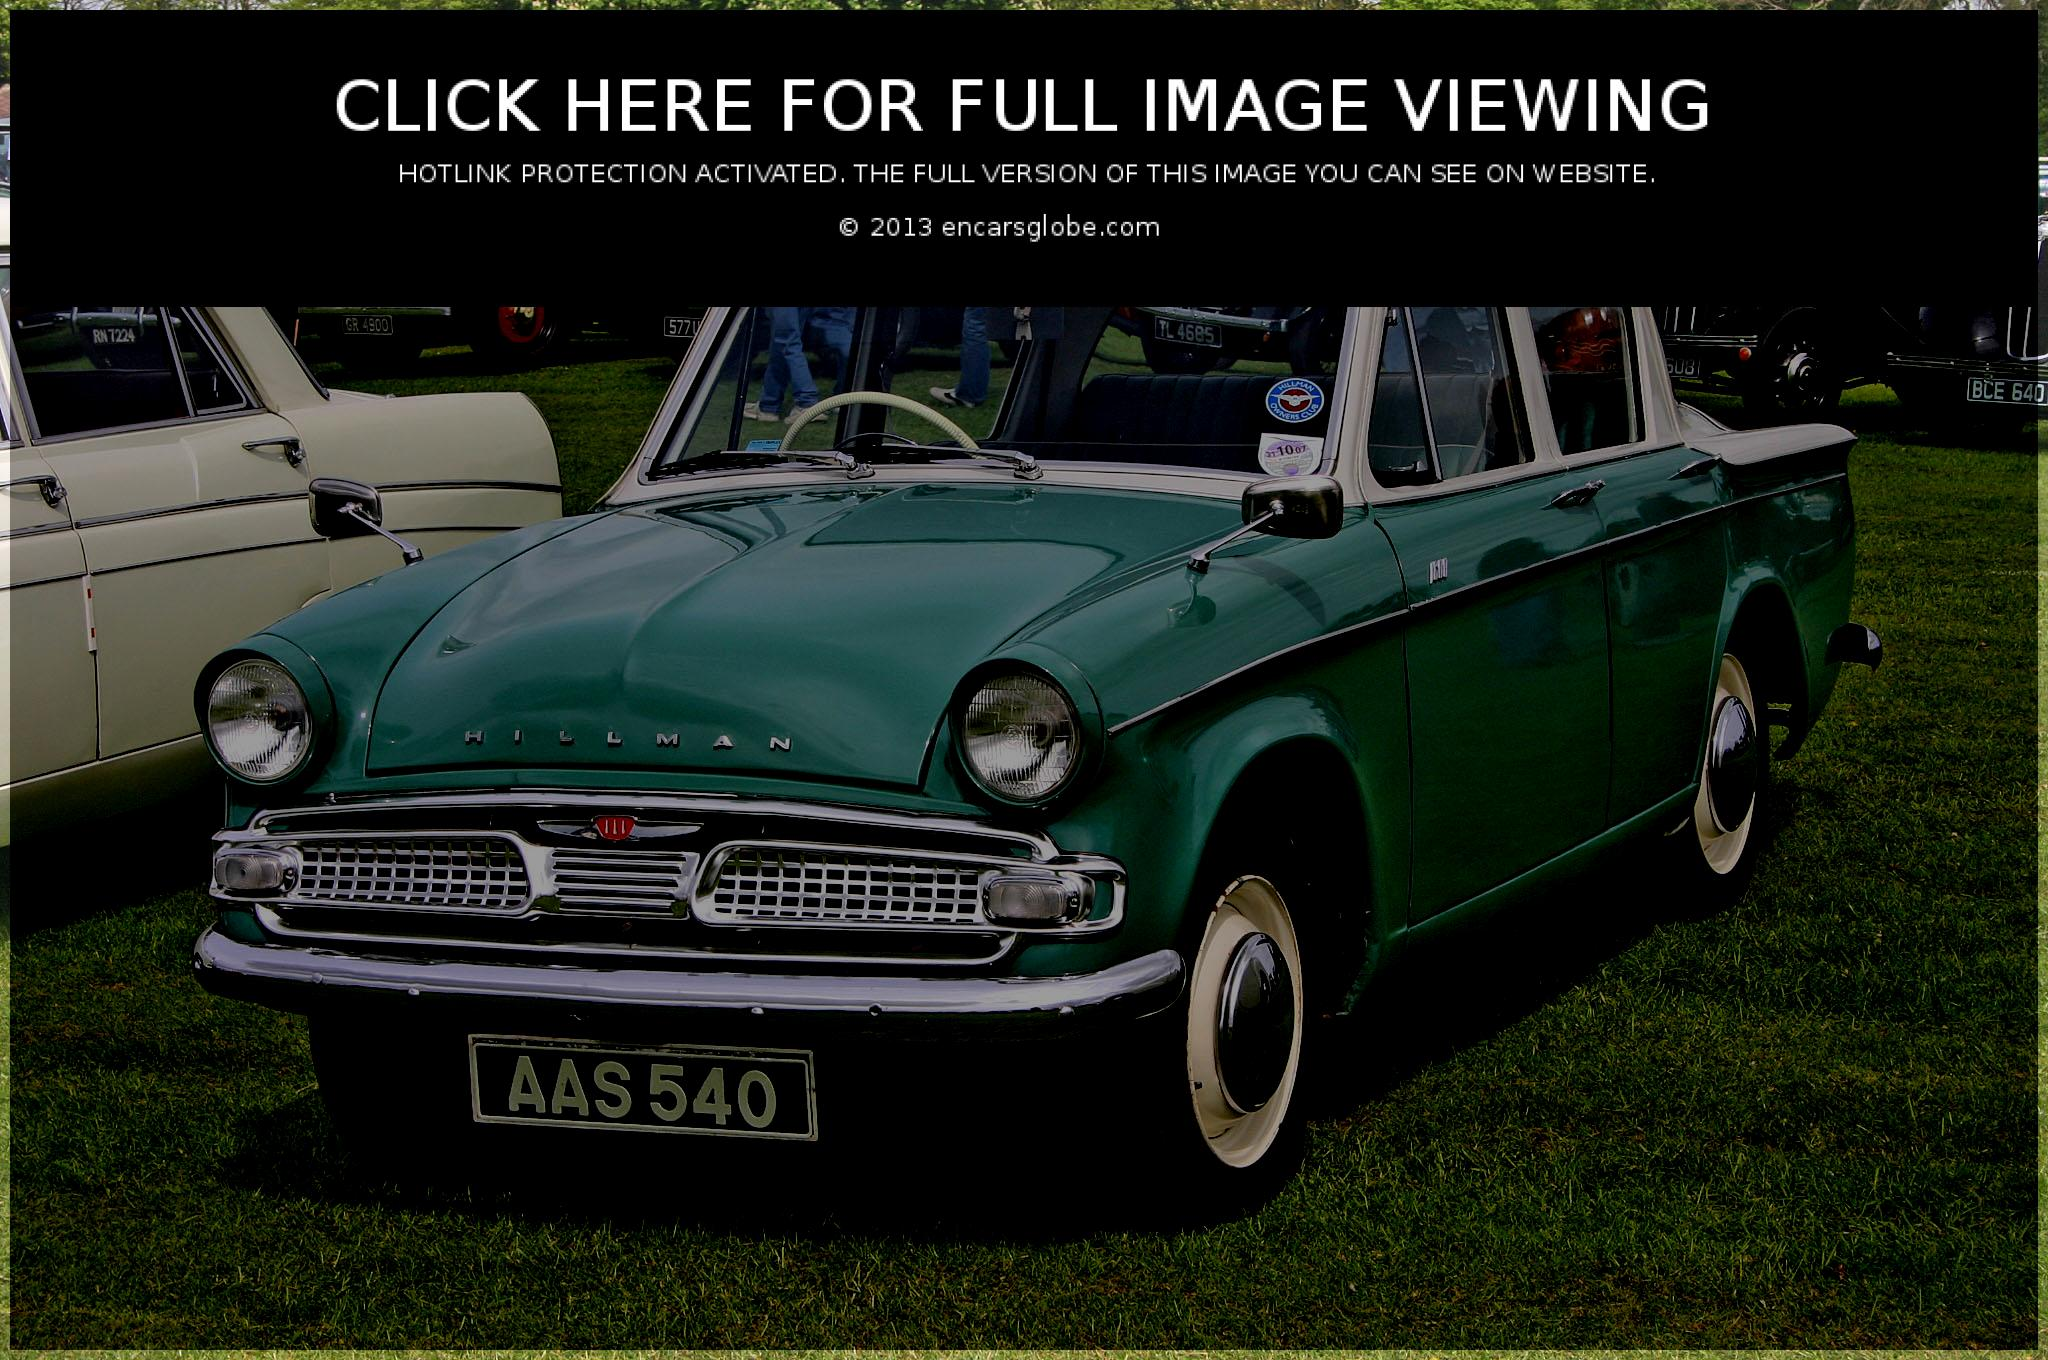 Hillman Super Minx sedan Photo Gallery: Photo #11 out of 9, Image ...